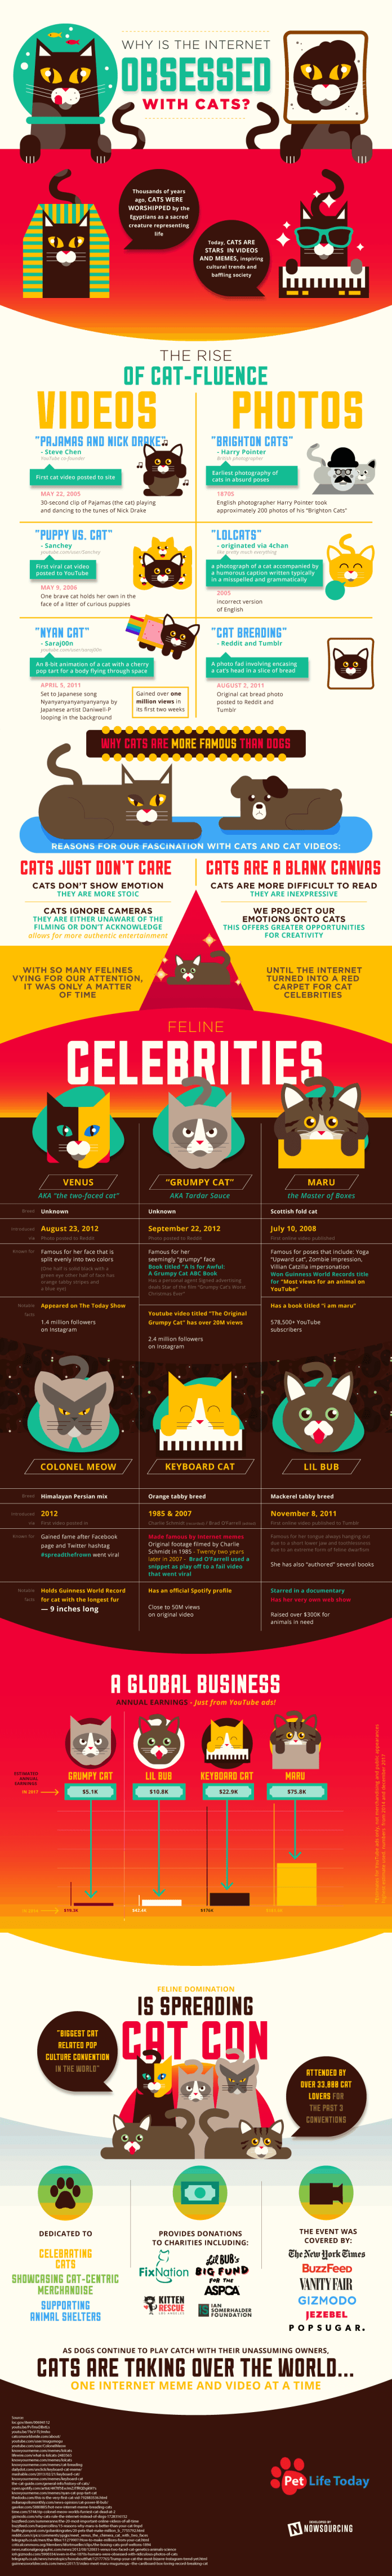 Here's Why The Internet Is So Obsessed With Cats [Infographic] 1